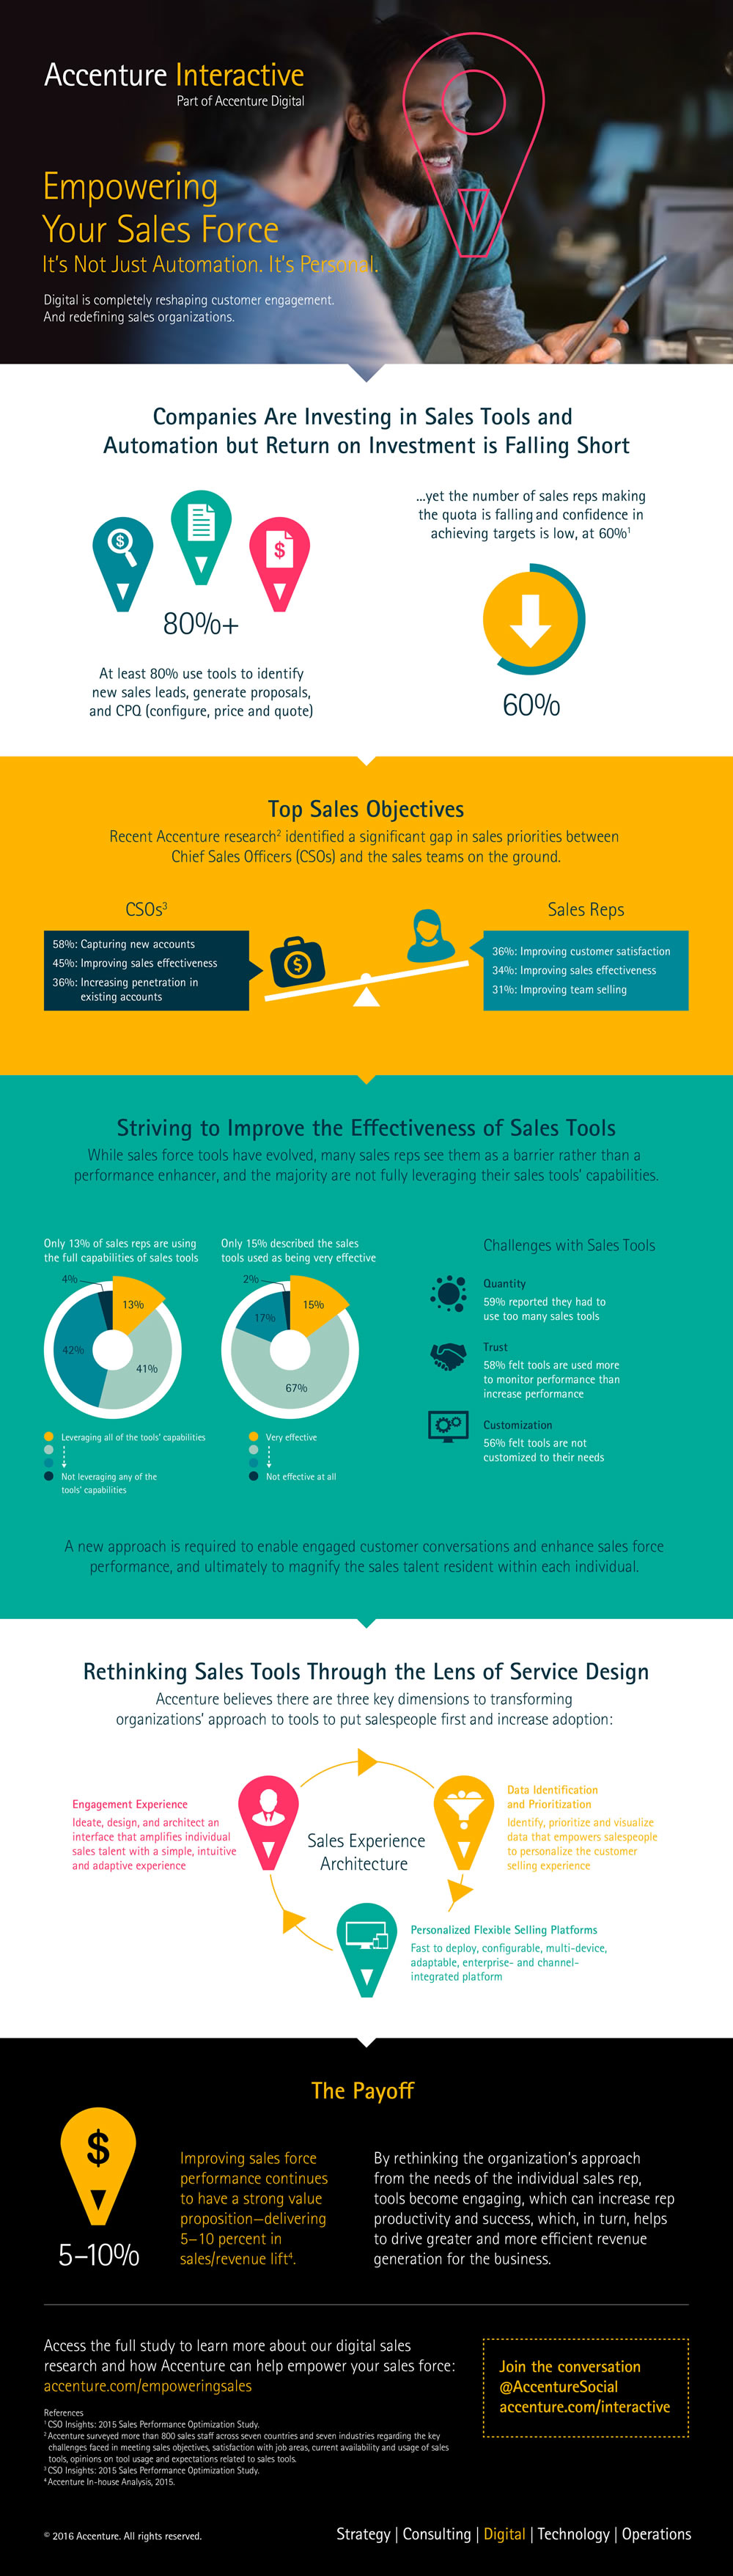 Accenture-Empowering-Your-Sales-Force-Digital-Sales-POV-Final-Infographic